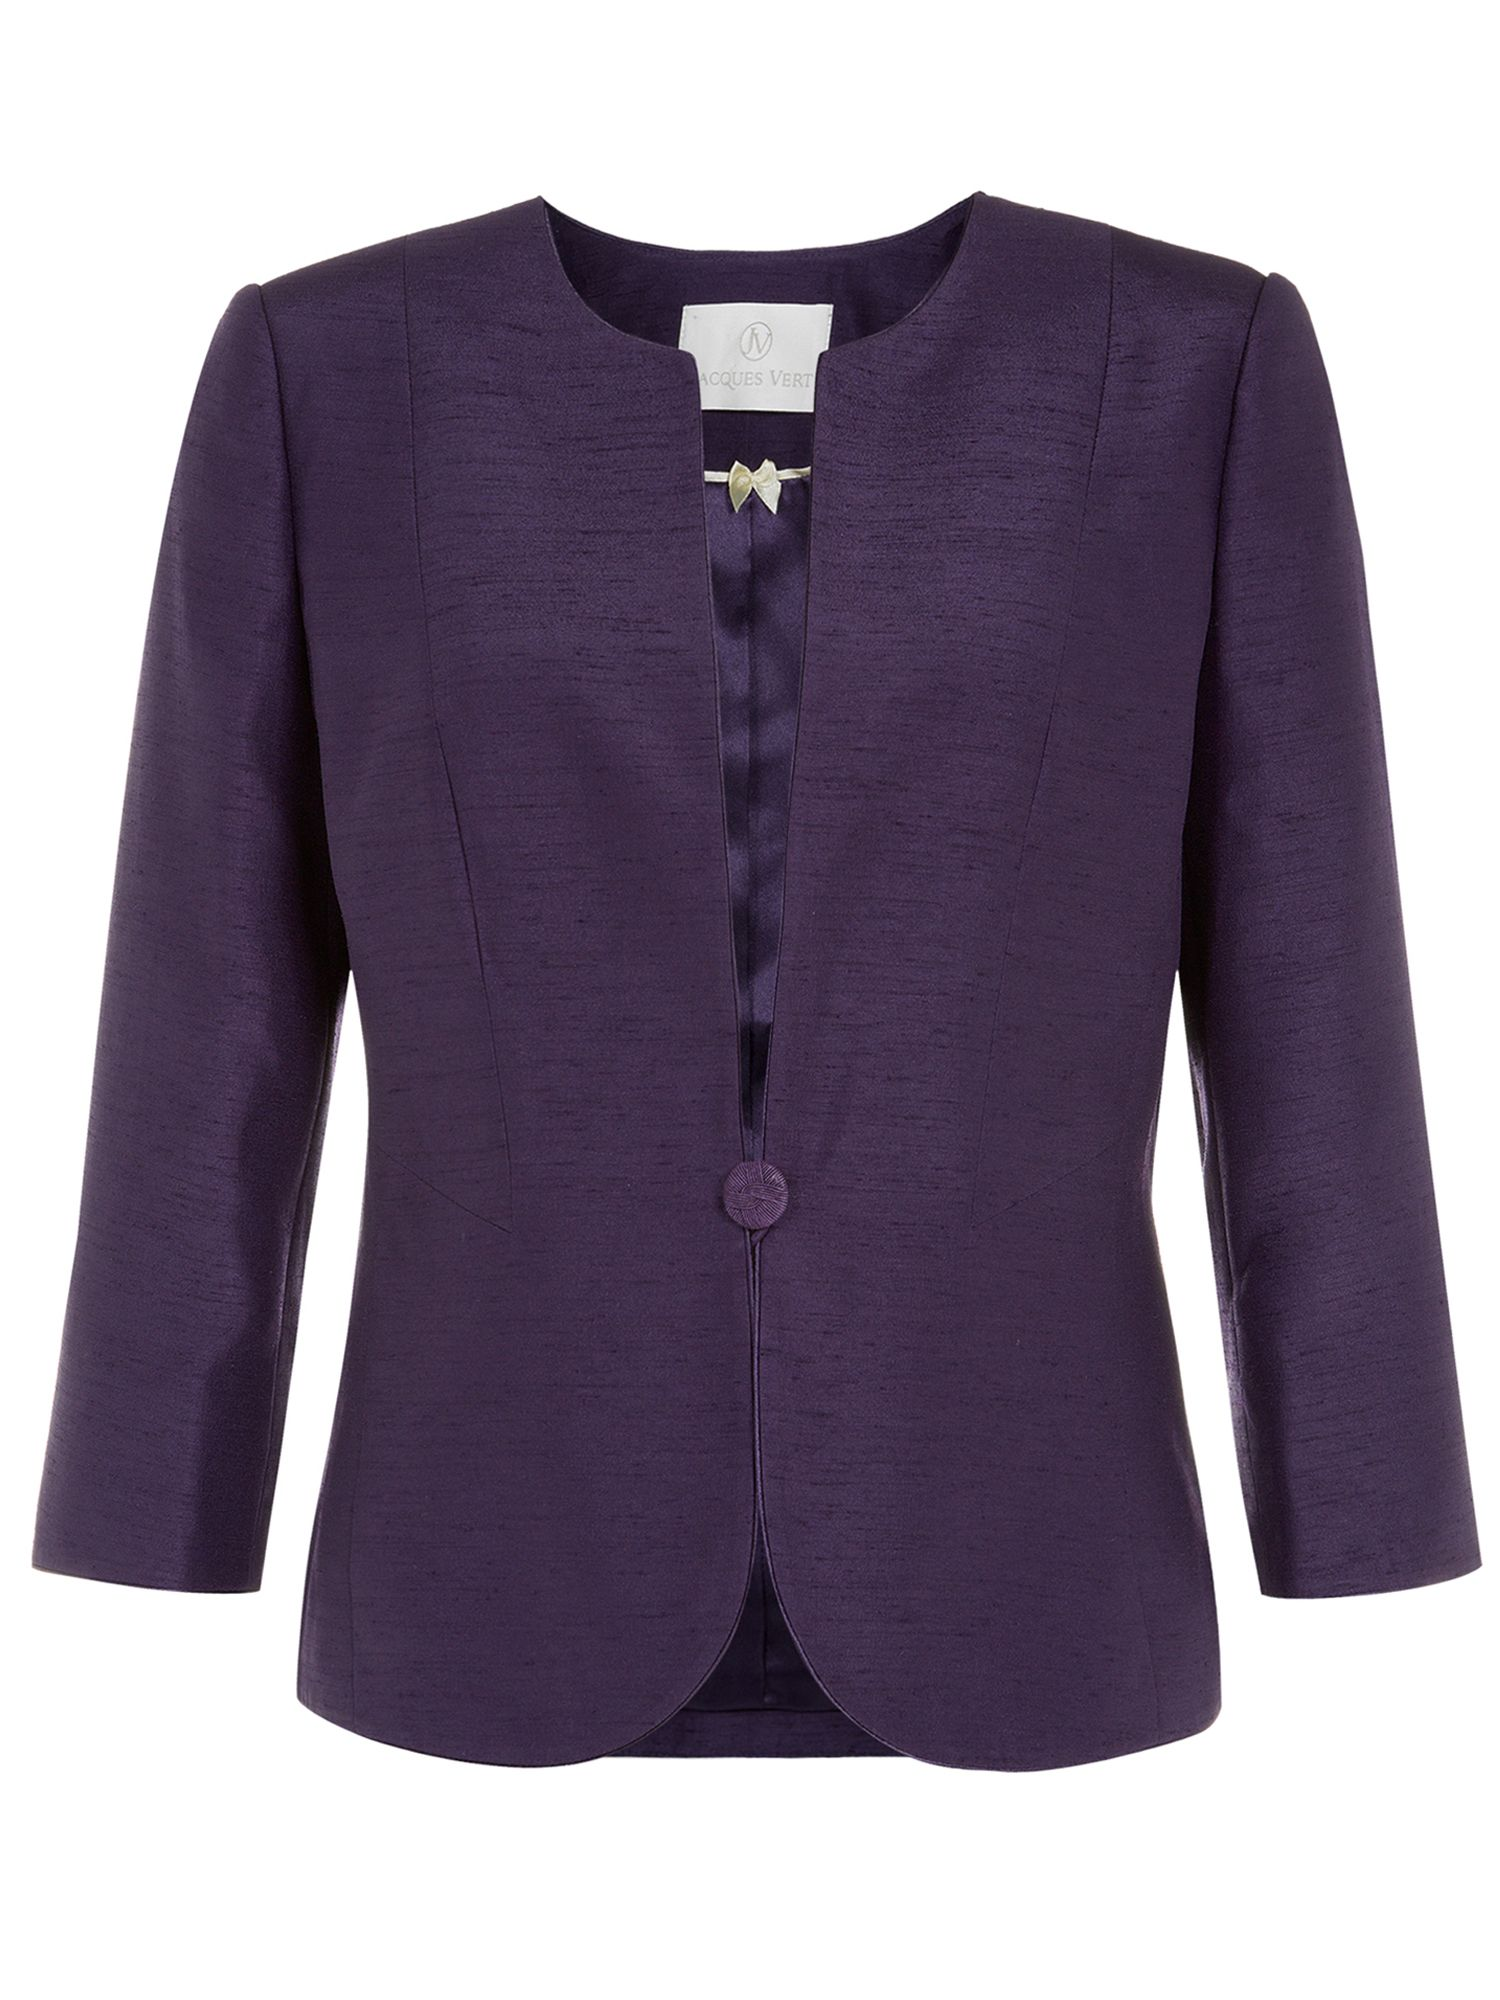 Collarless one button jacket